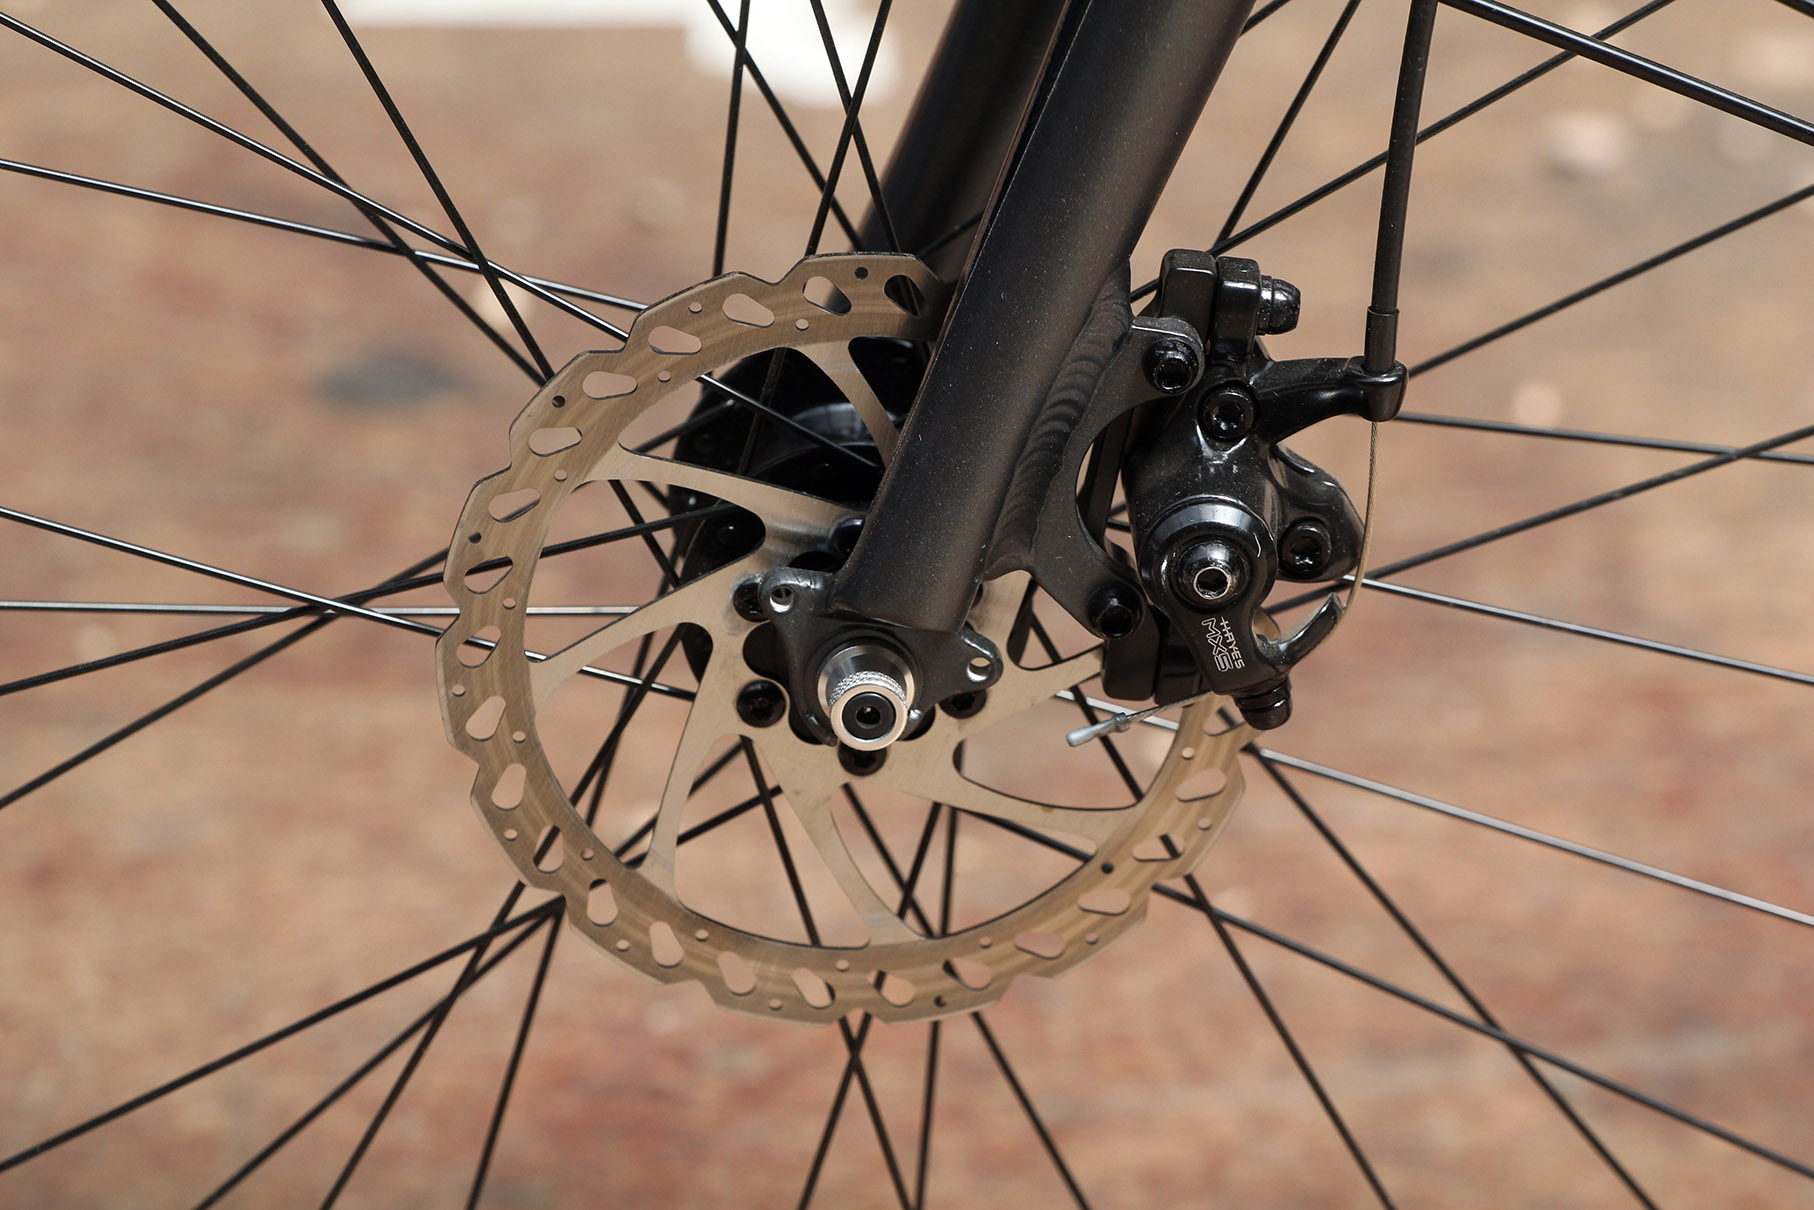 Titlereview Btwin Nework 700 City Bike Title Meta Http Police Line Barricade Tape 3 Inch X 300 Meter M Front Disc Brake